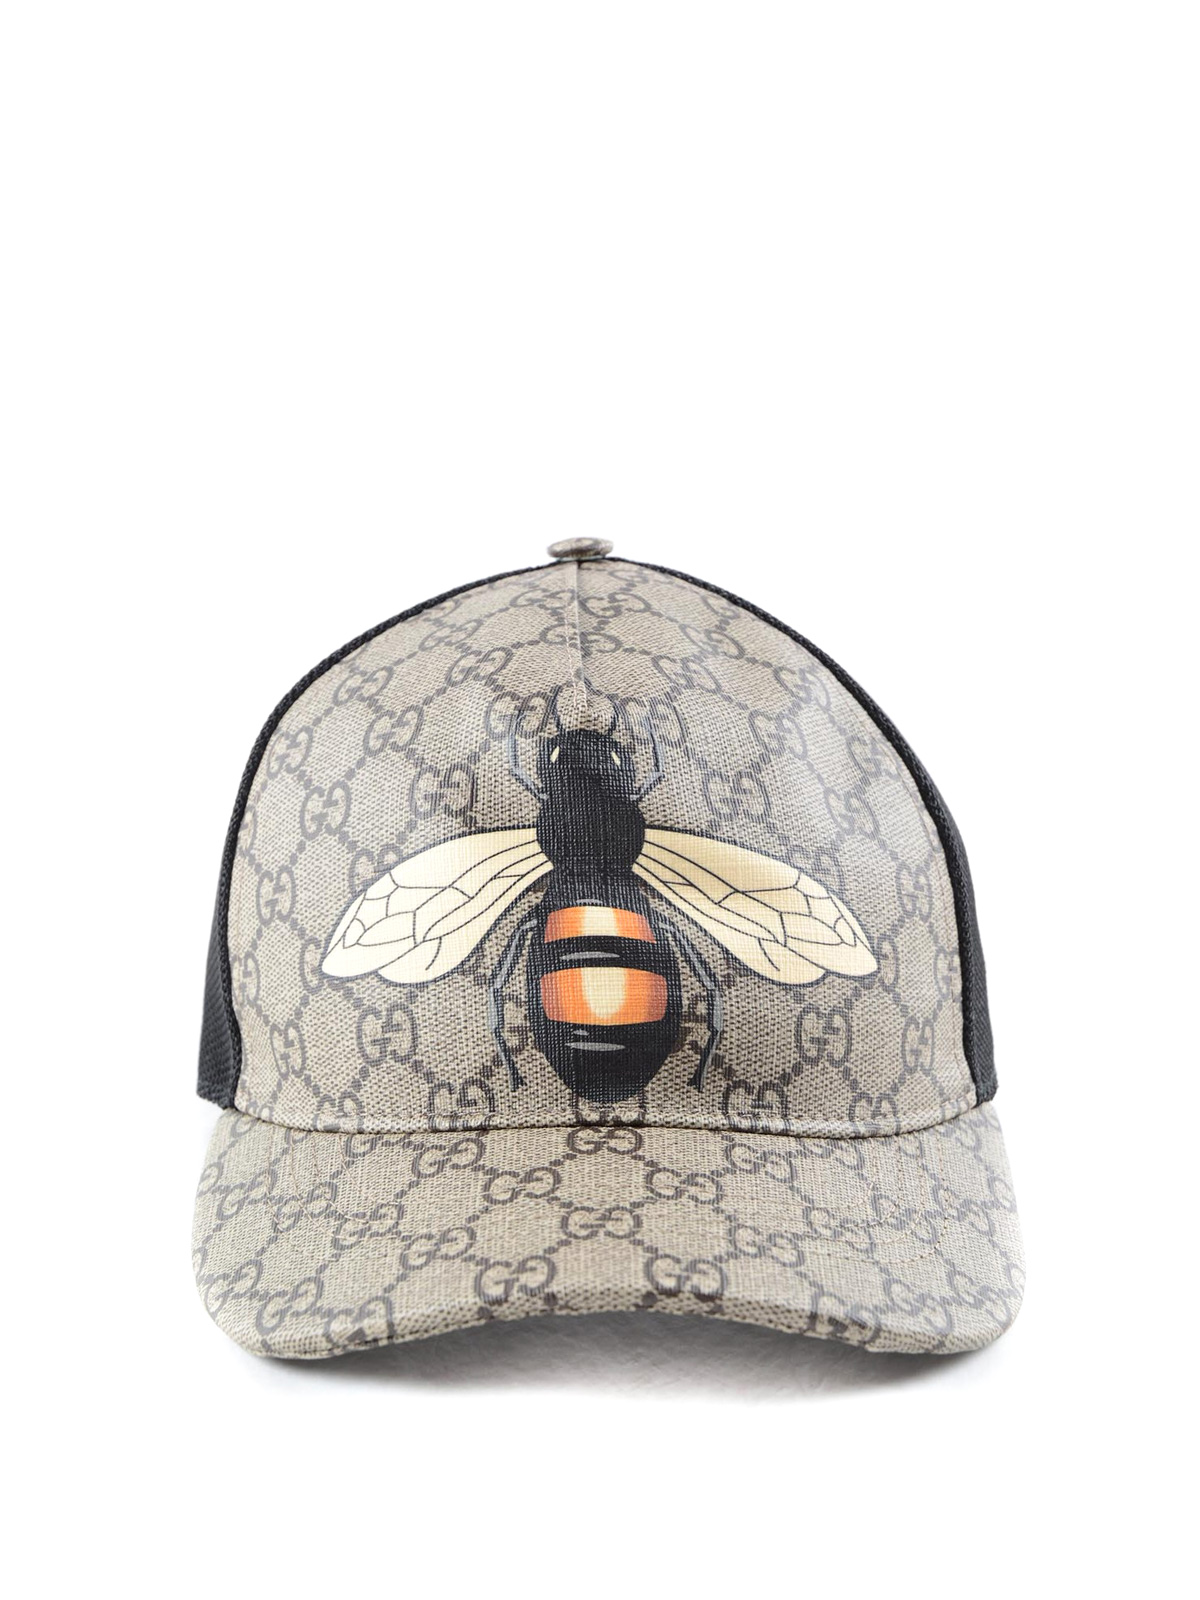 7921dfd03c61e Gucci Beanie With Bee